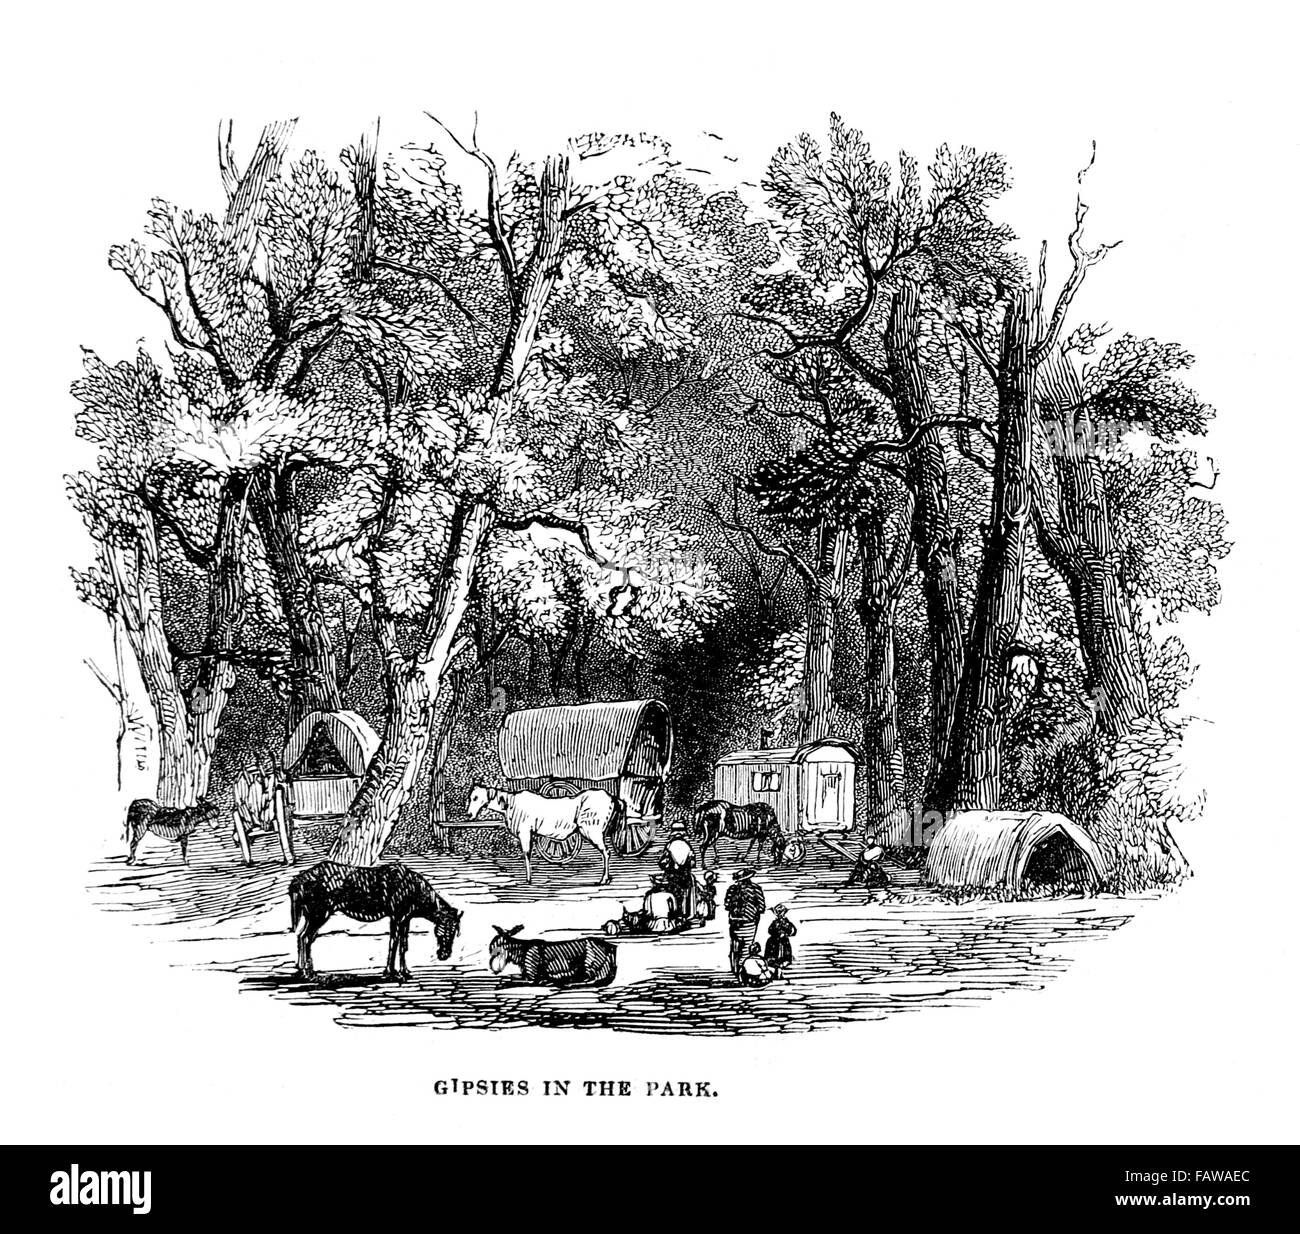 Gipsies Camped in the Park at Goodwood Races, 1844 Illustrated London News July 1844; Black and White Illustration; - Stock Image